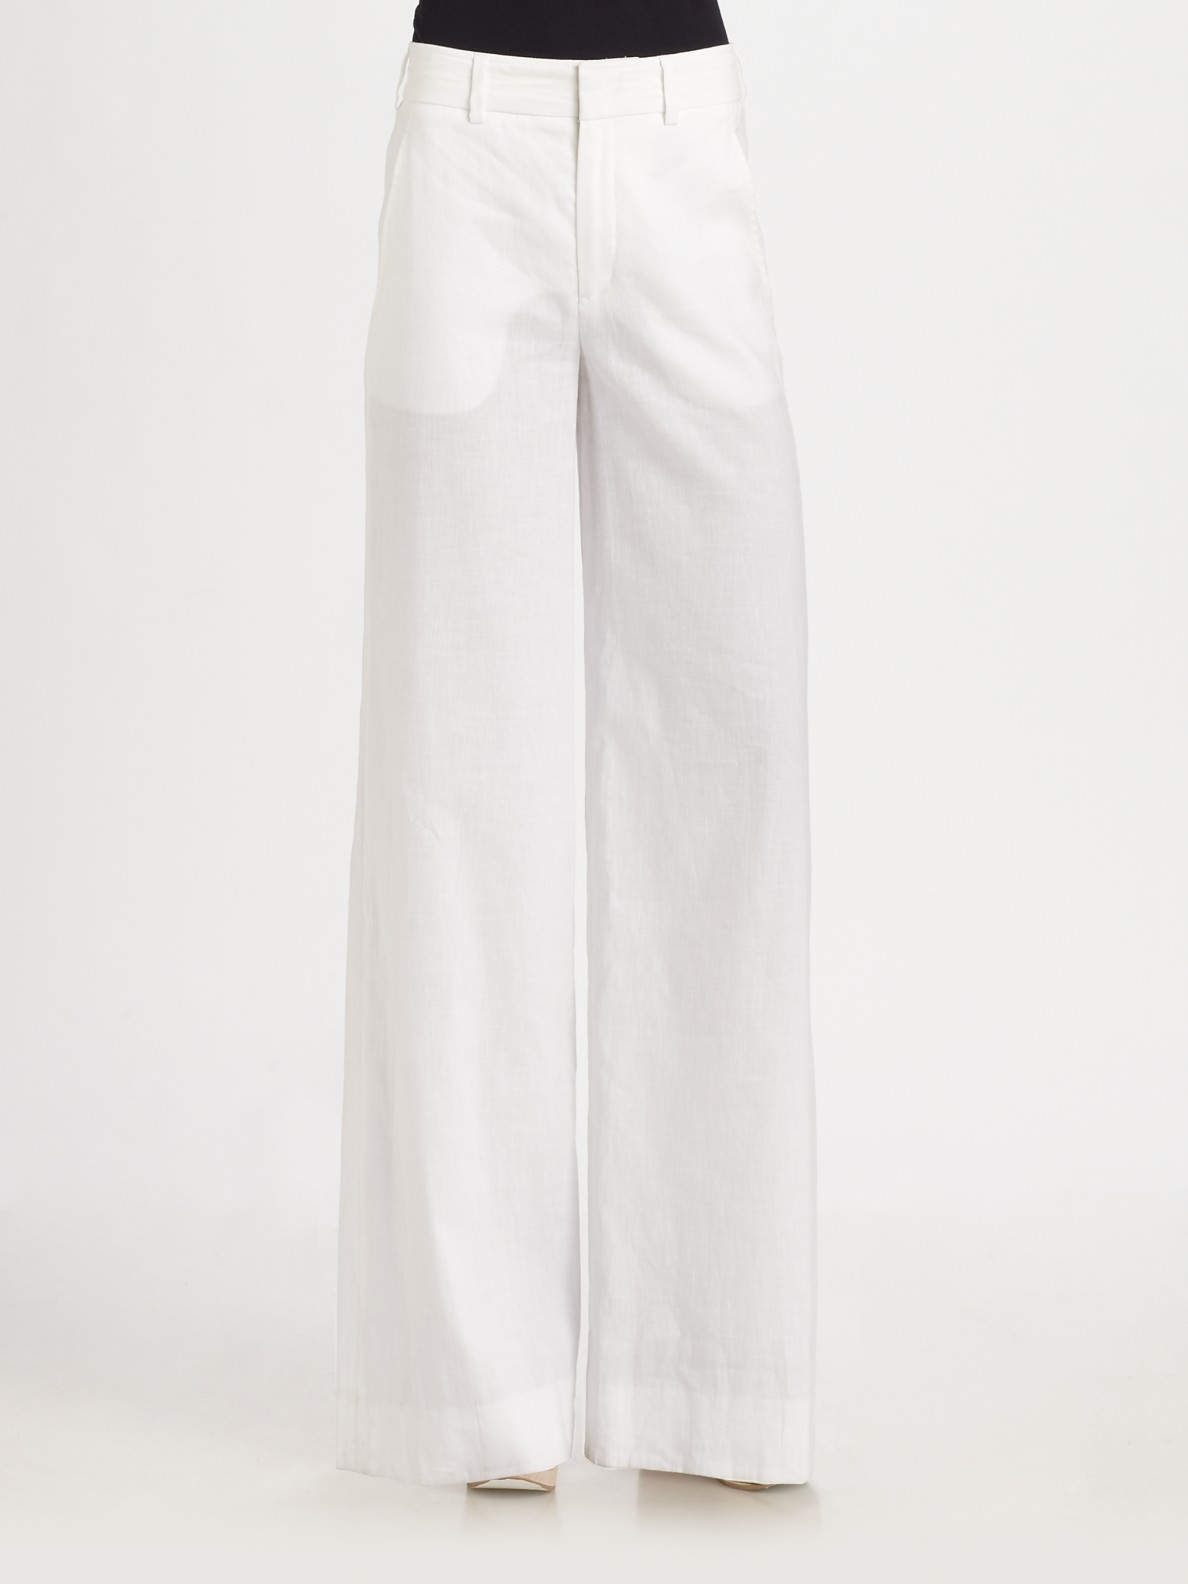 high waisted white linen pants - Pi Pants